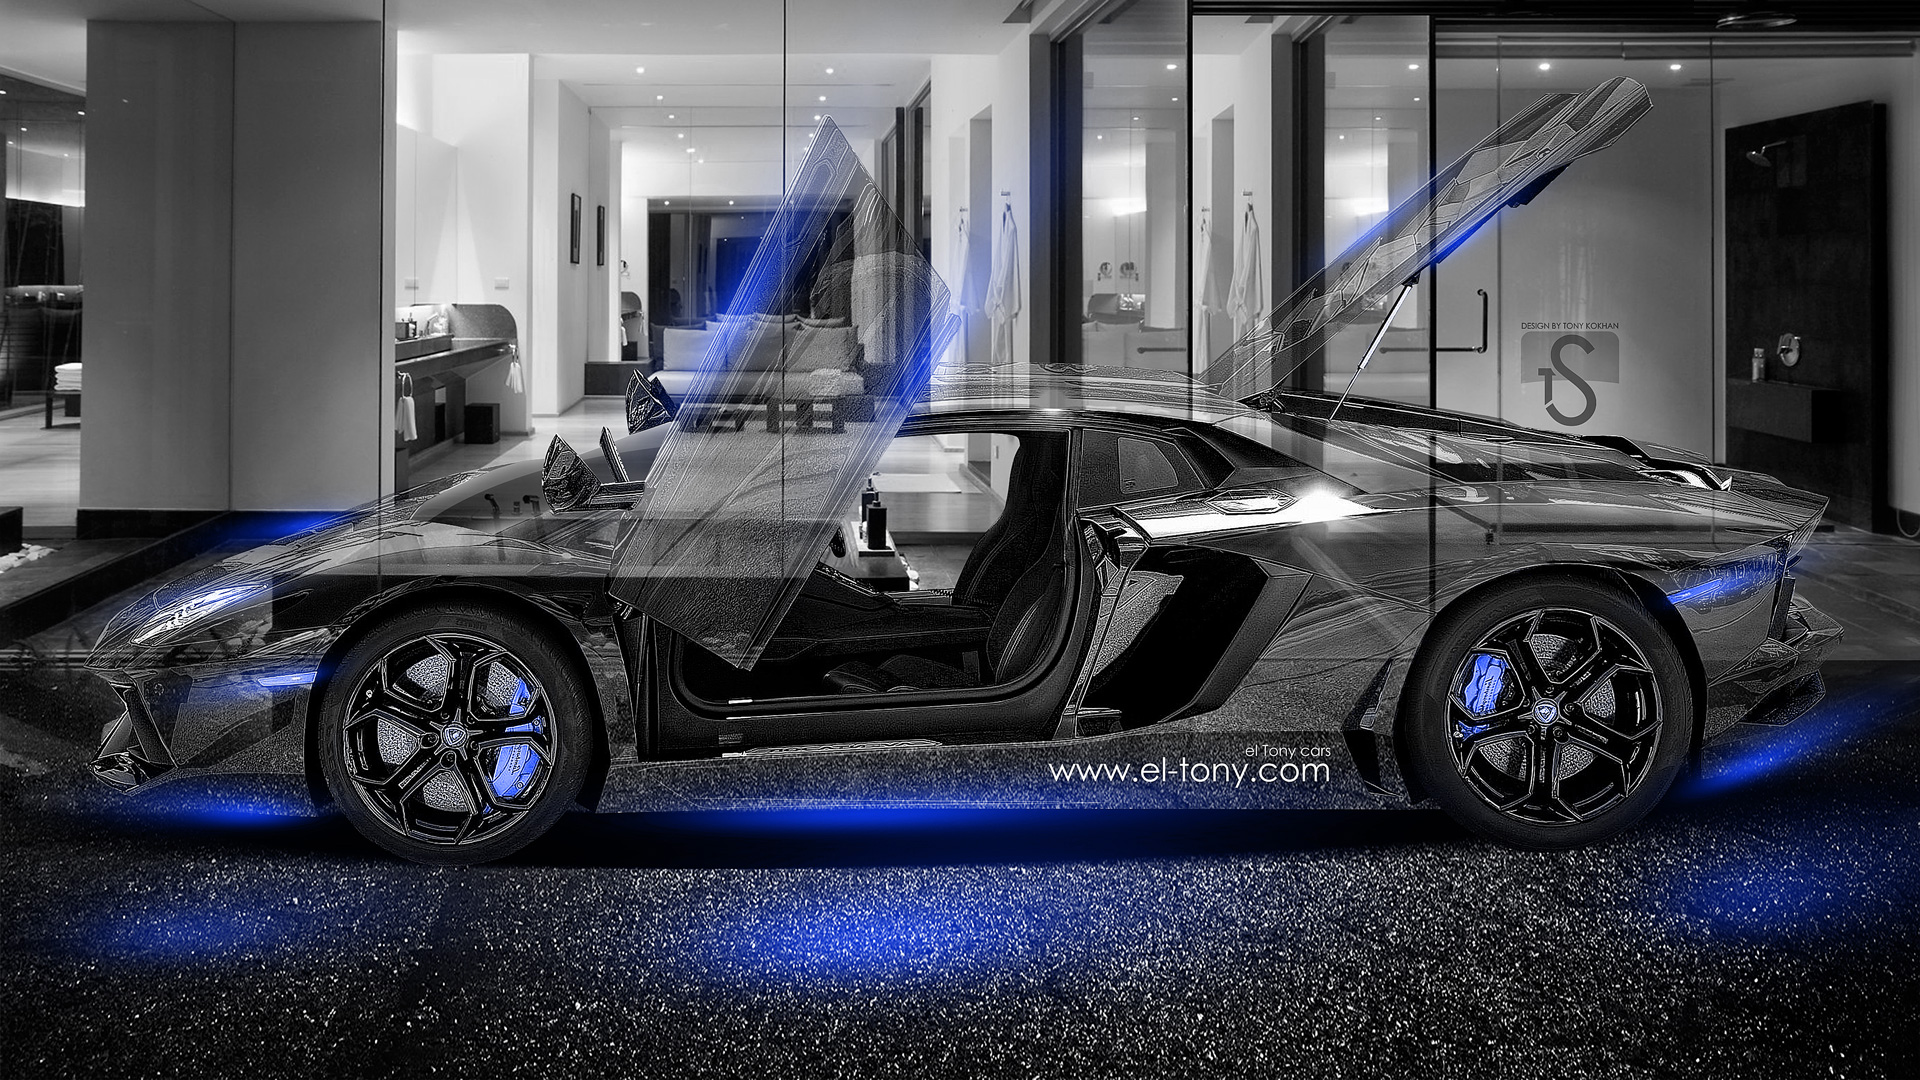 lamborghini aventador crystal home car 2014 blue neon